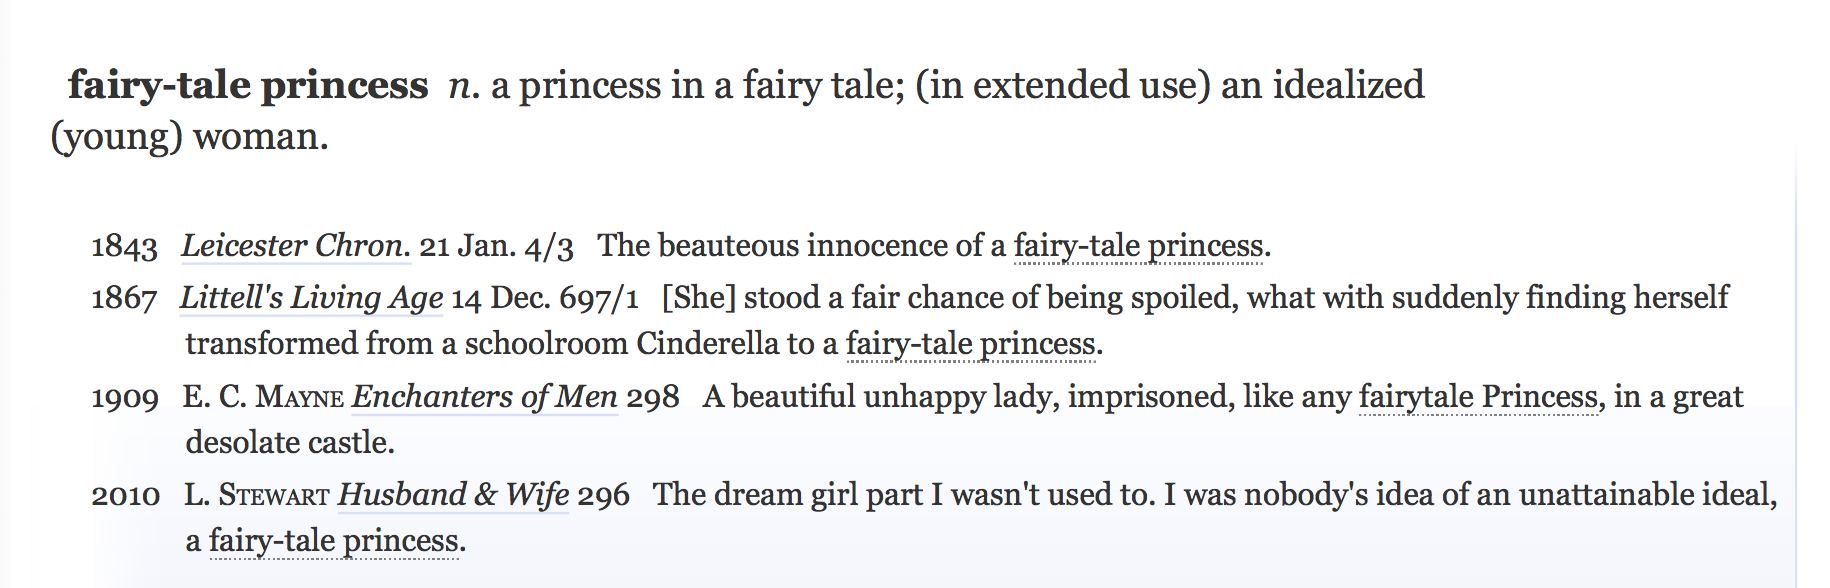 Fairy Tale Princess definition